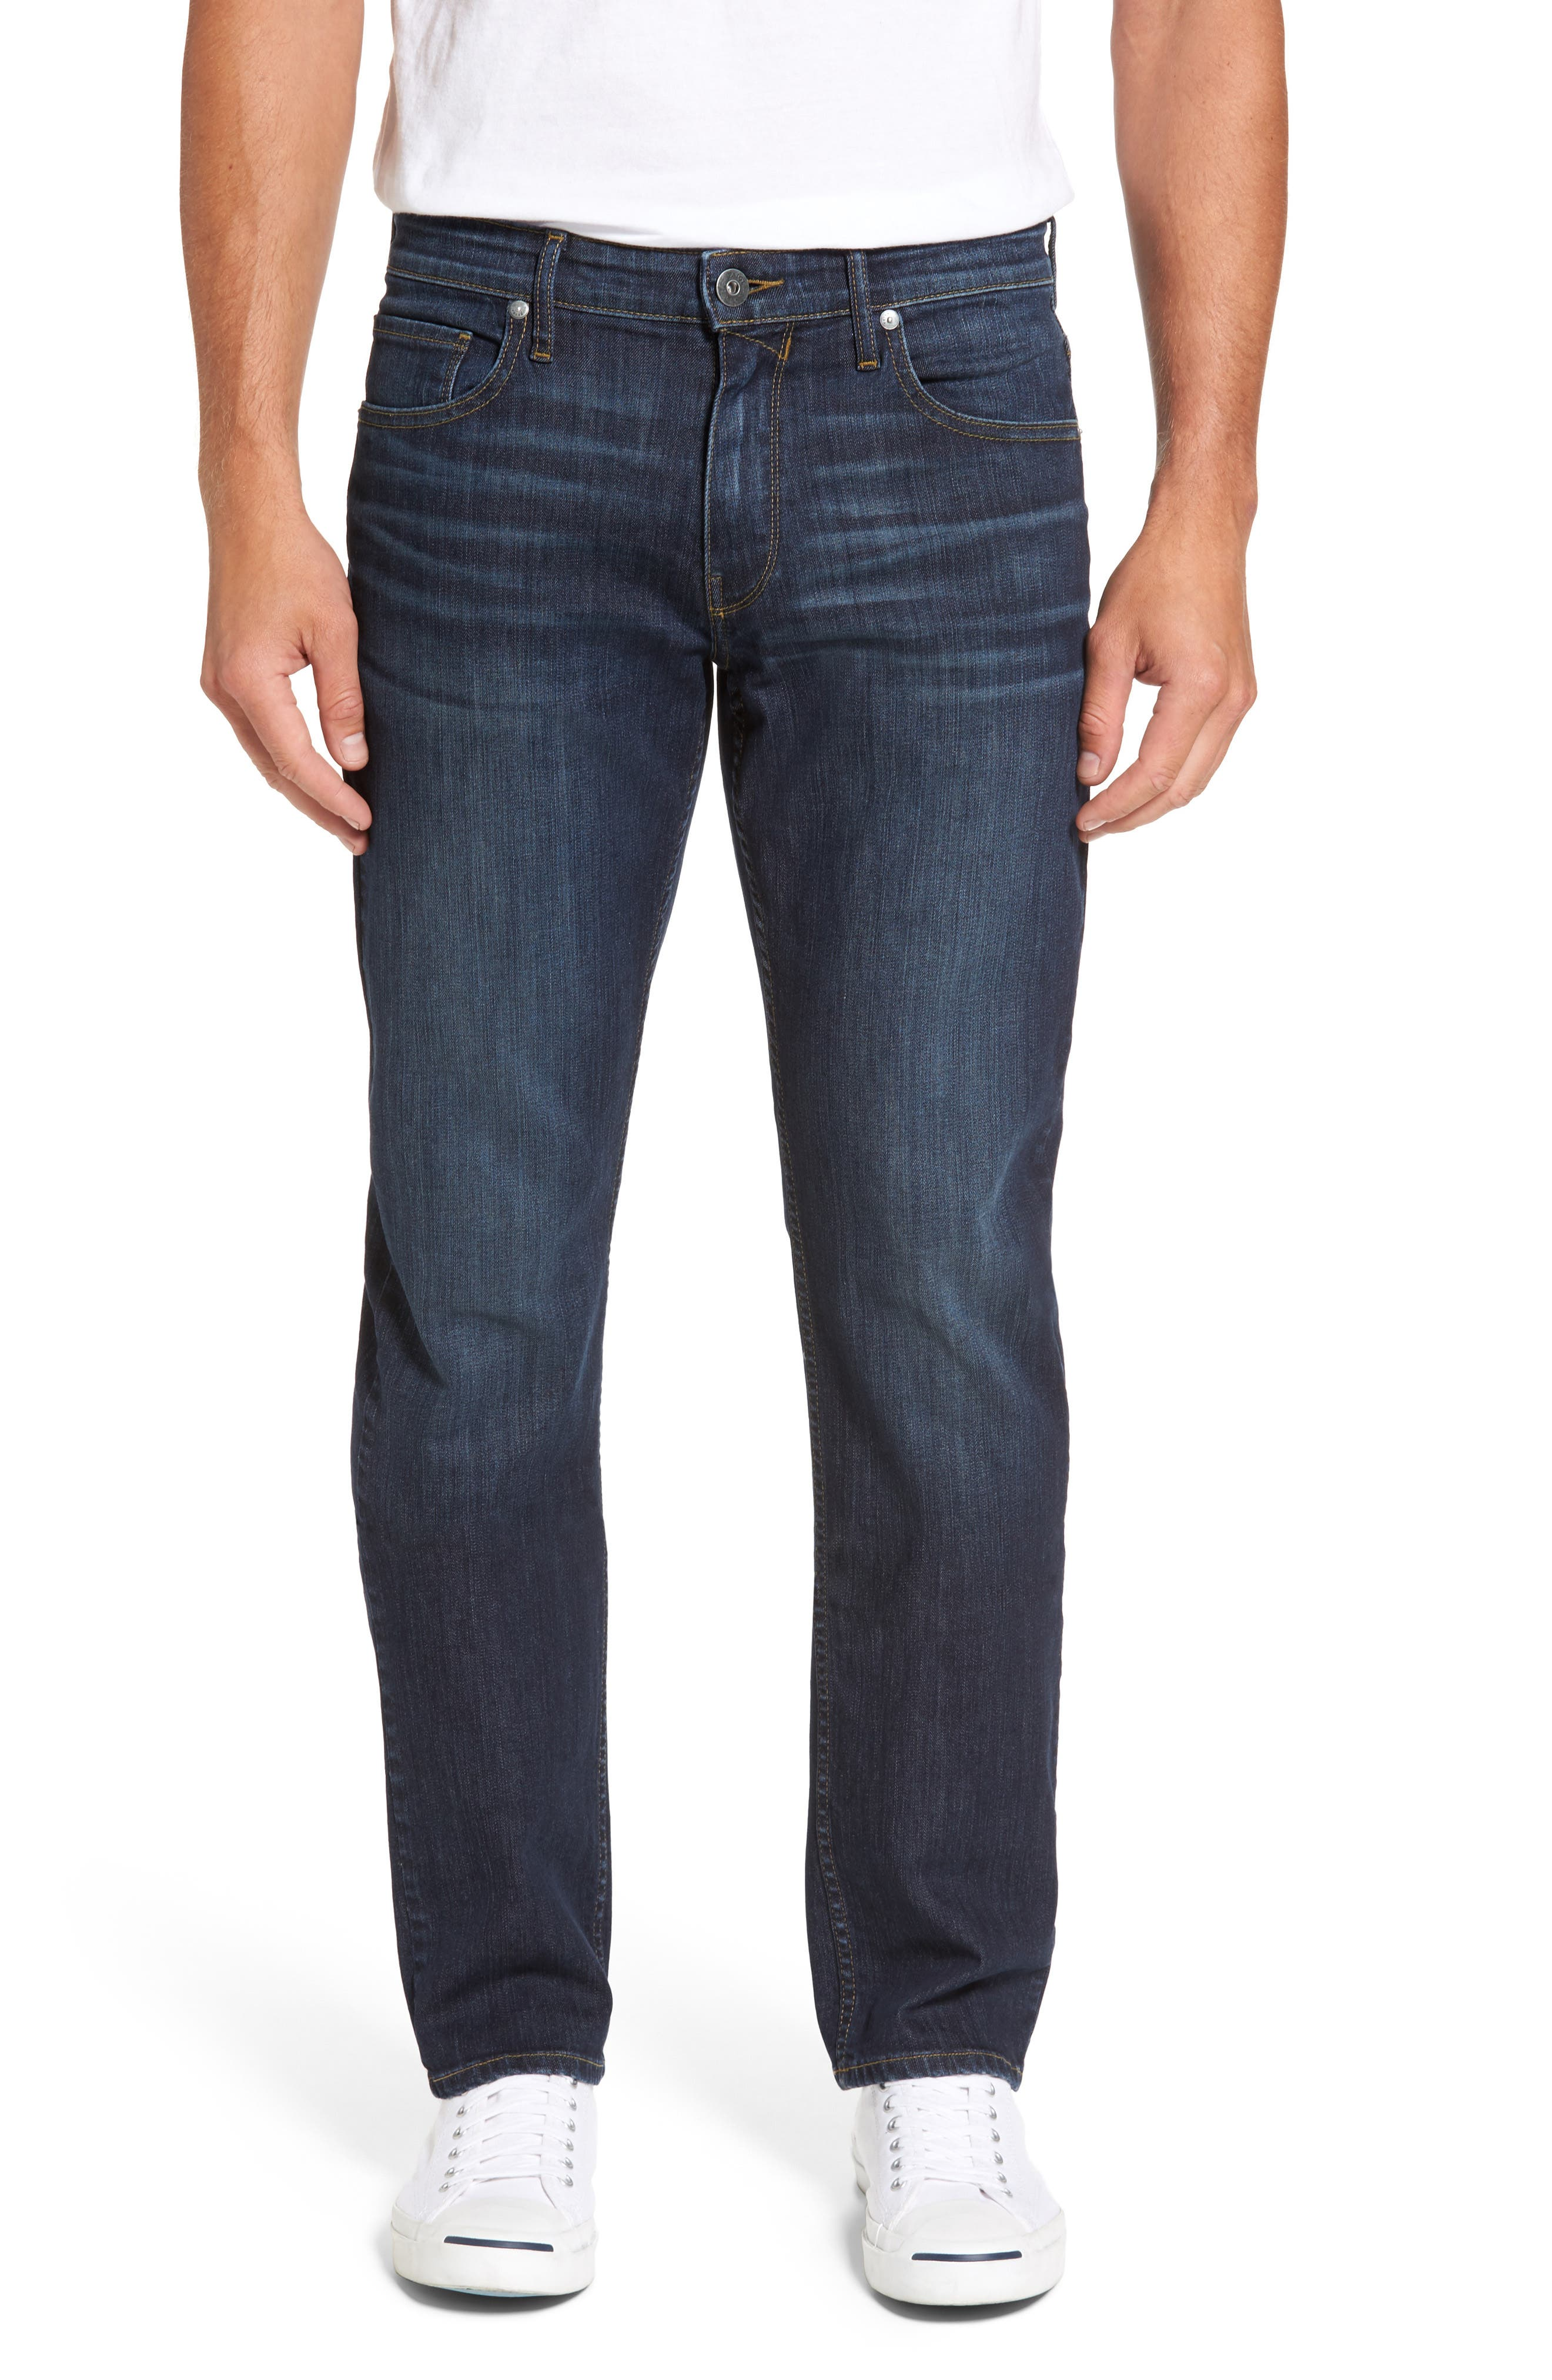 Legacy - Normandie Straight Fit Jeans,                         Main,                         color, 400